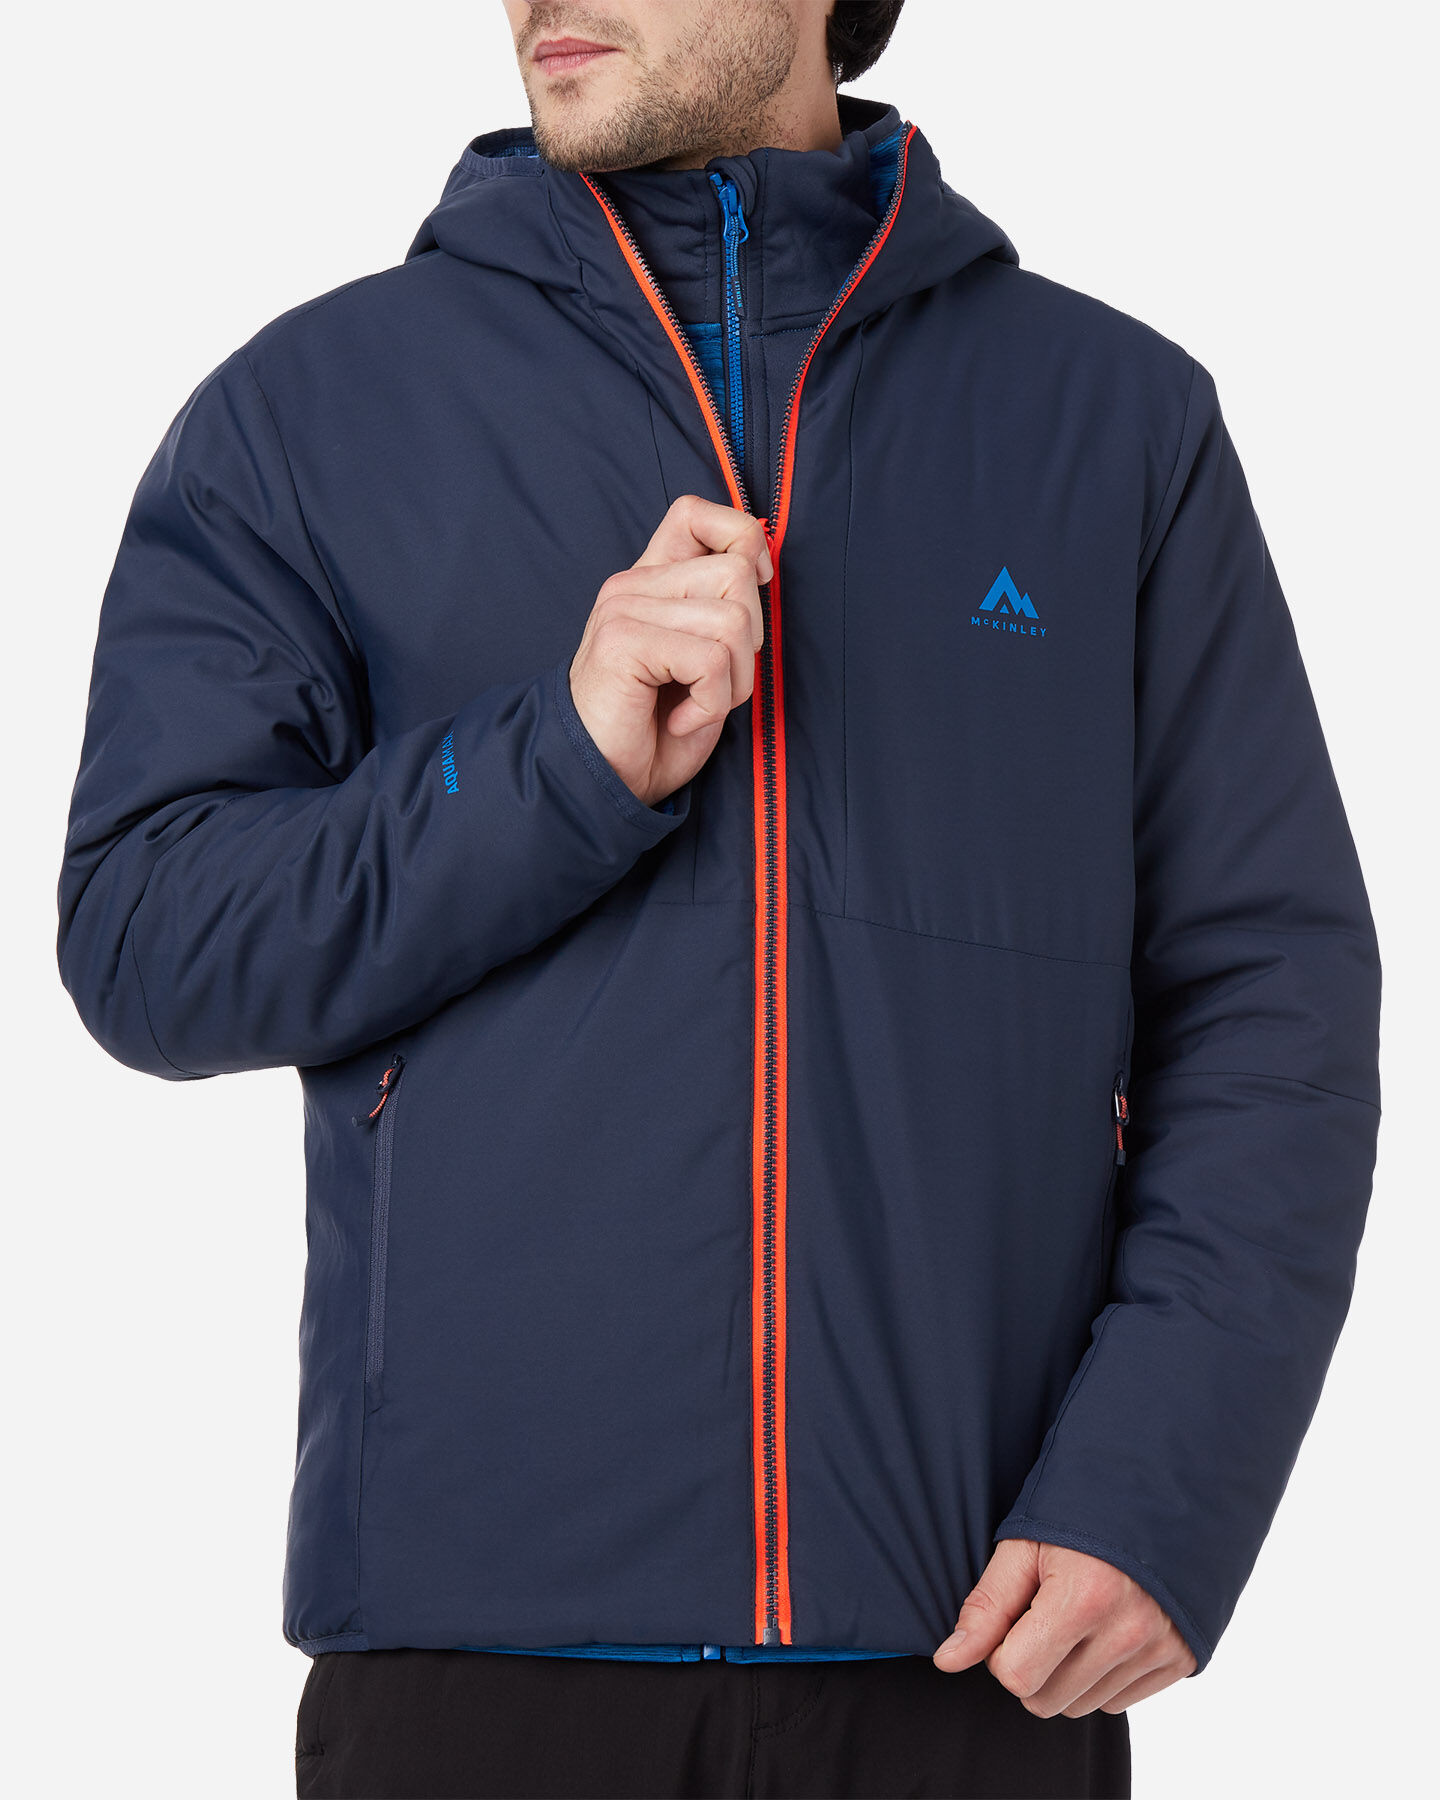 Giacca outdoor MCKINLEY LEPUS M S5207565 scatto 1